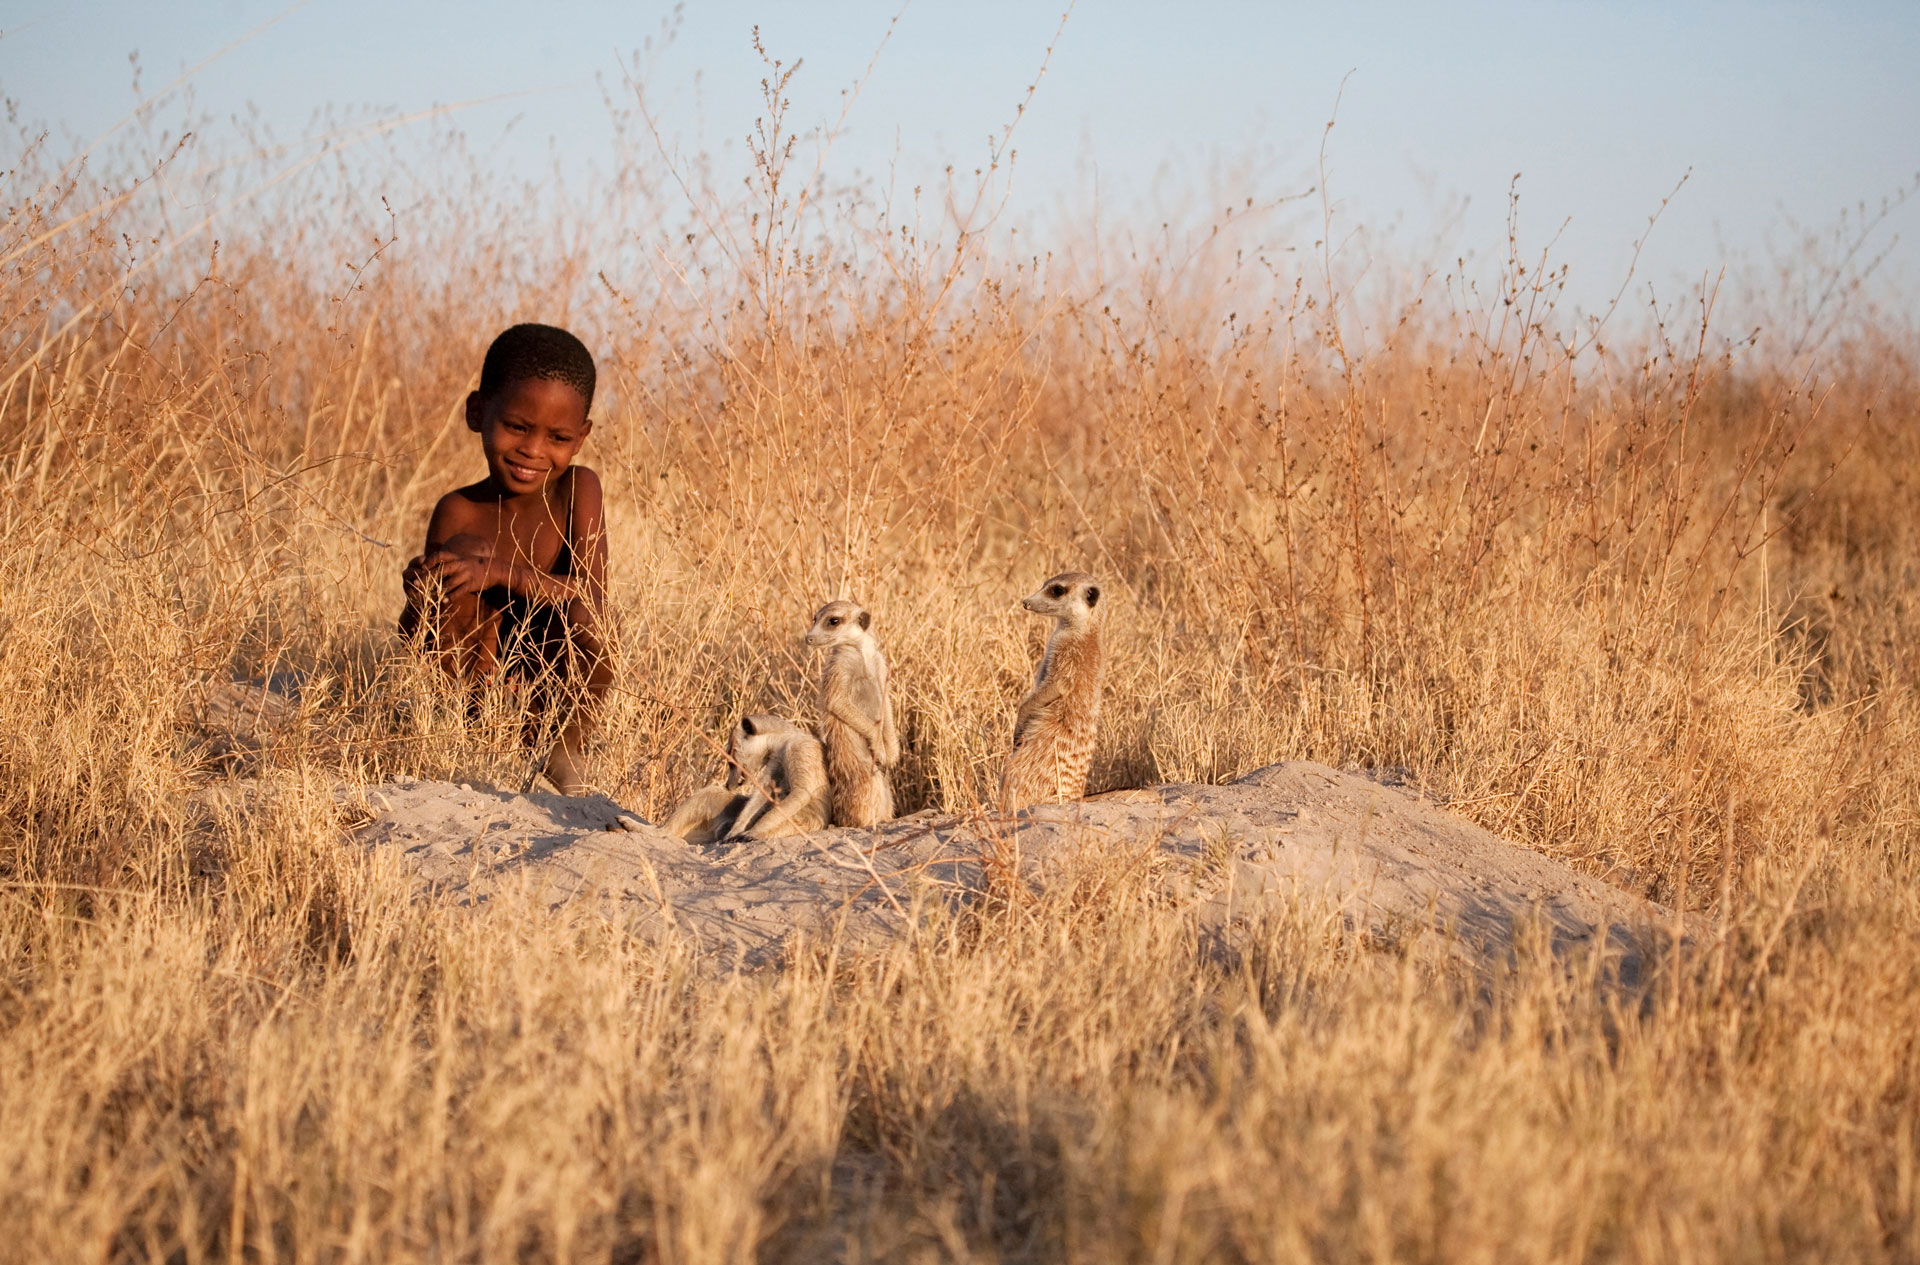 Botswana, a bushman child watches a family of meerkats by the entrance to their burrow.